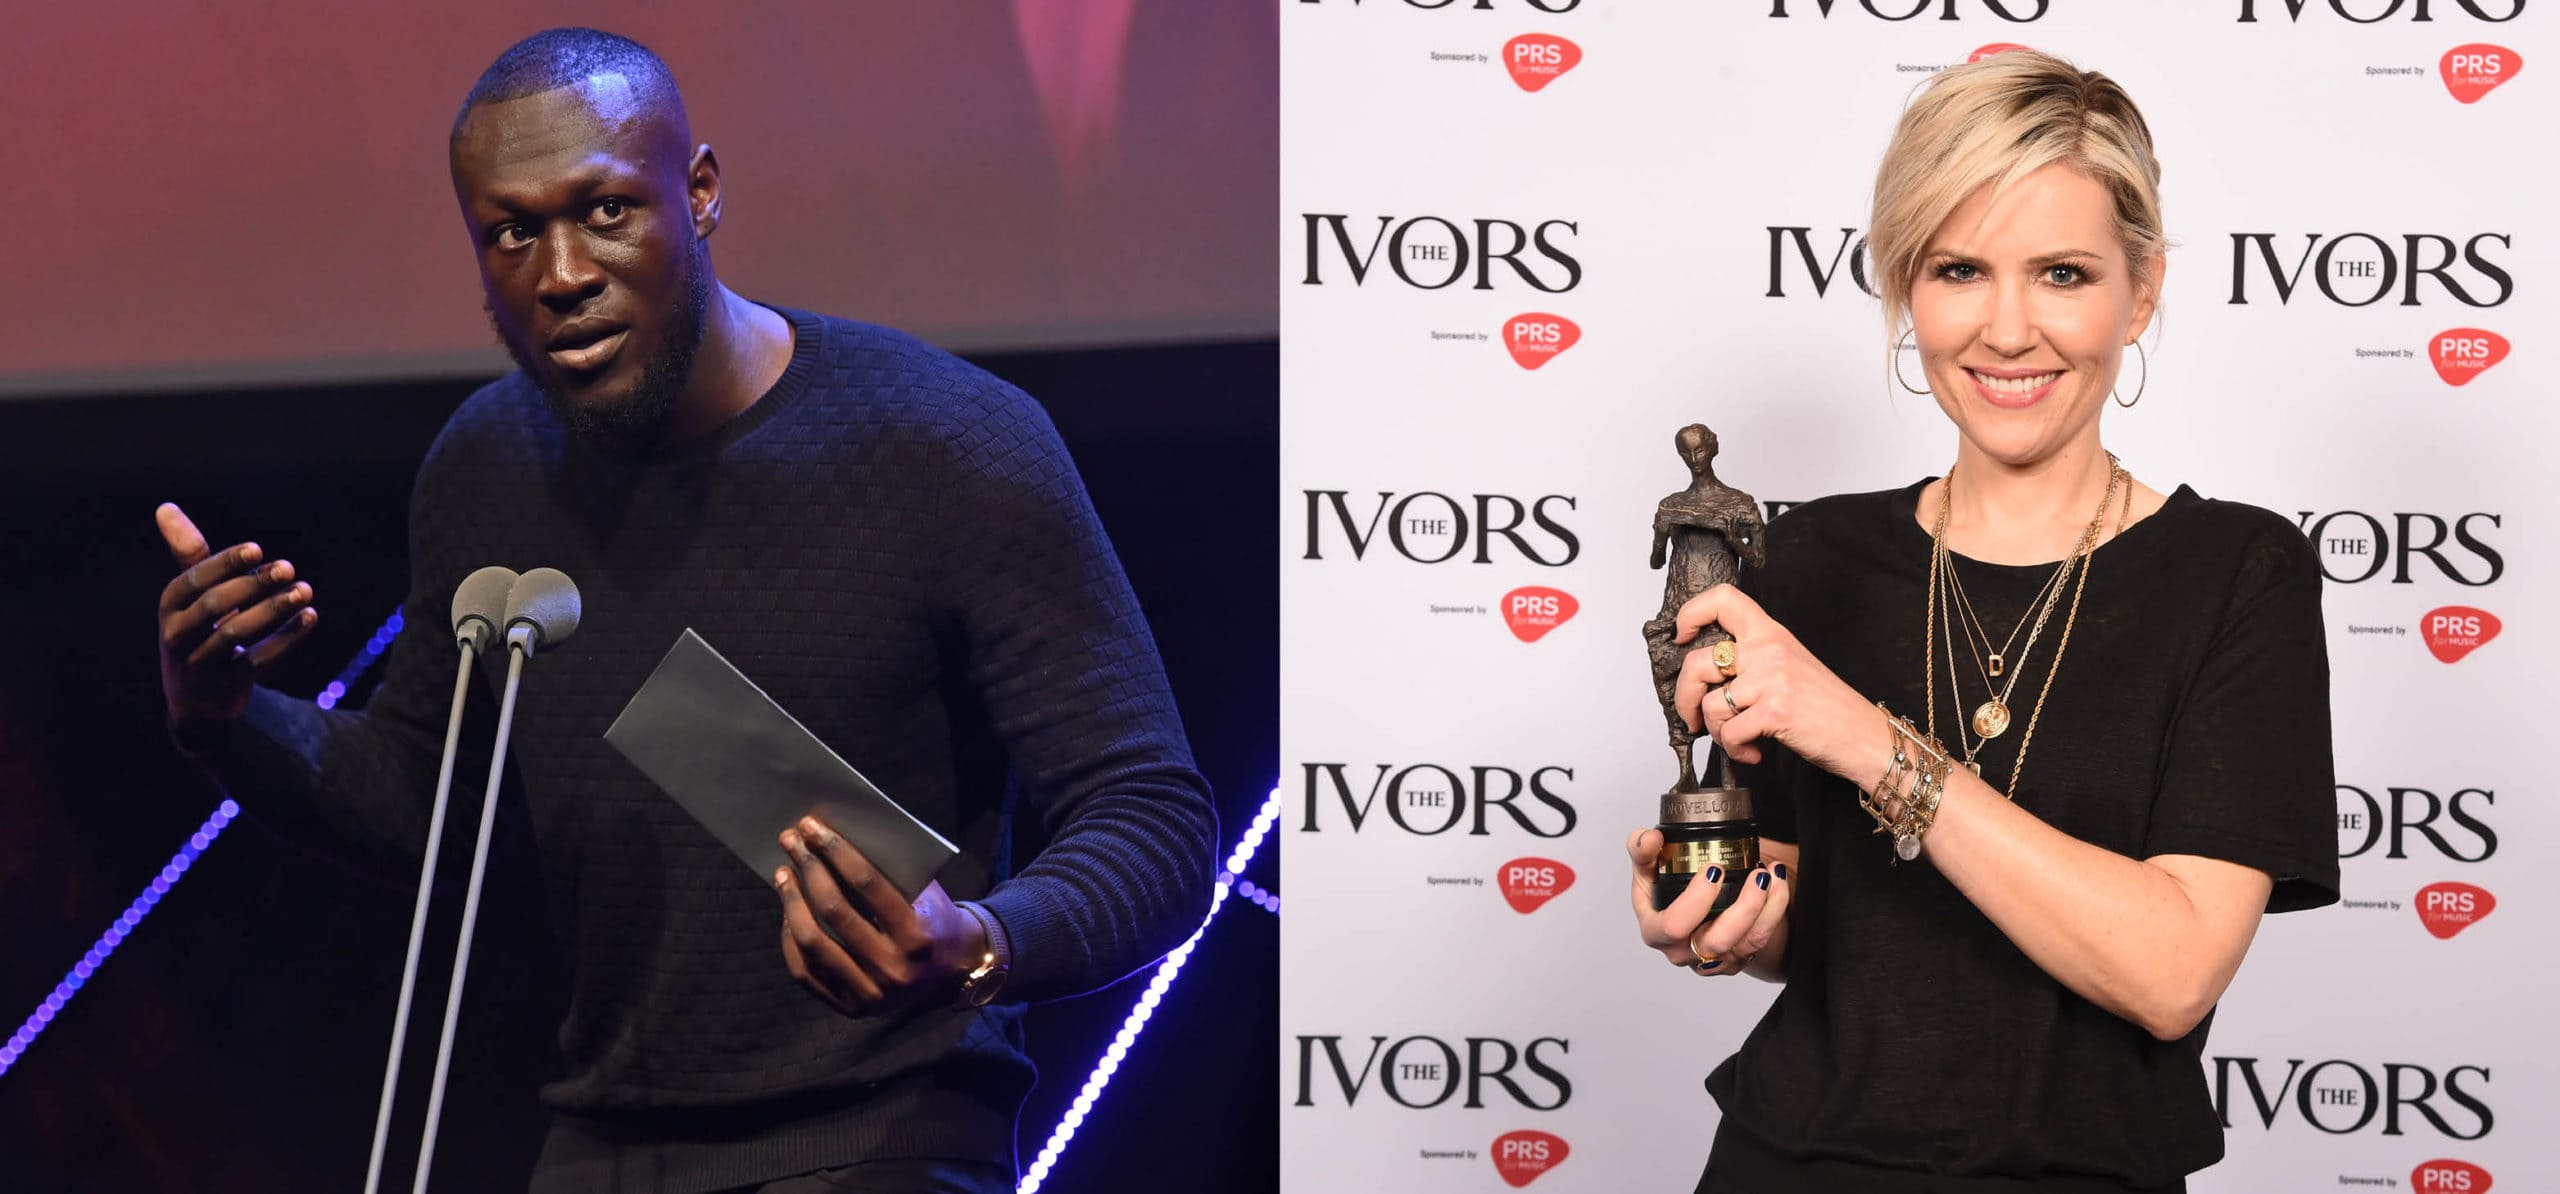 Celebrating songwriting excellence at The Ivors 2019 © Mark Allan